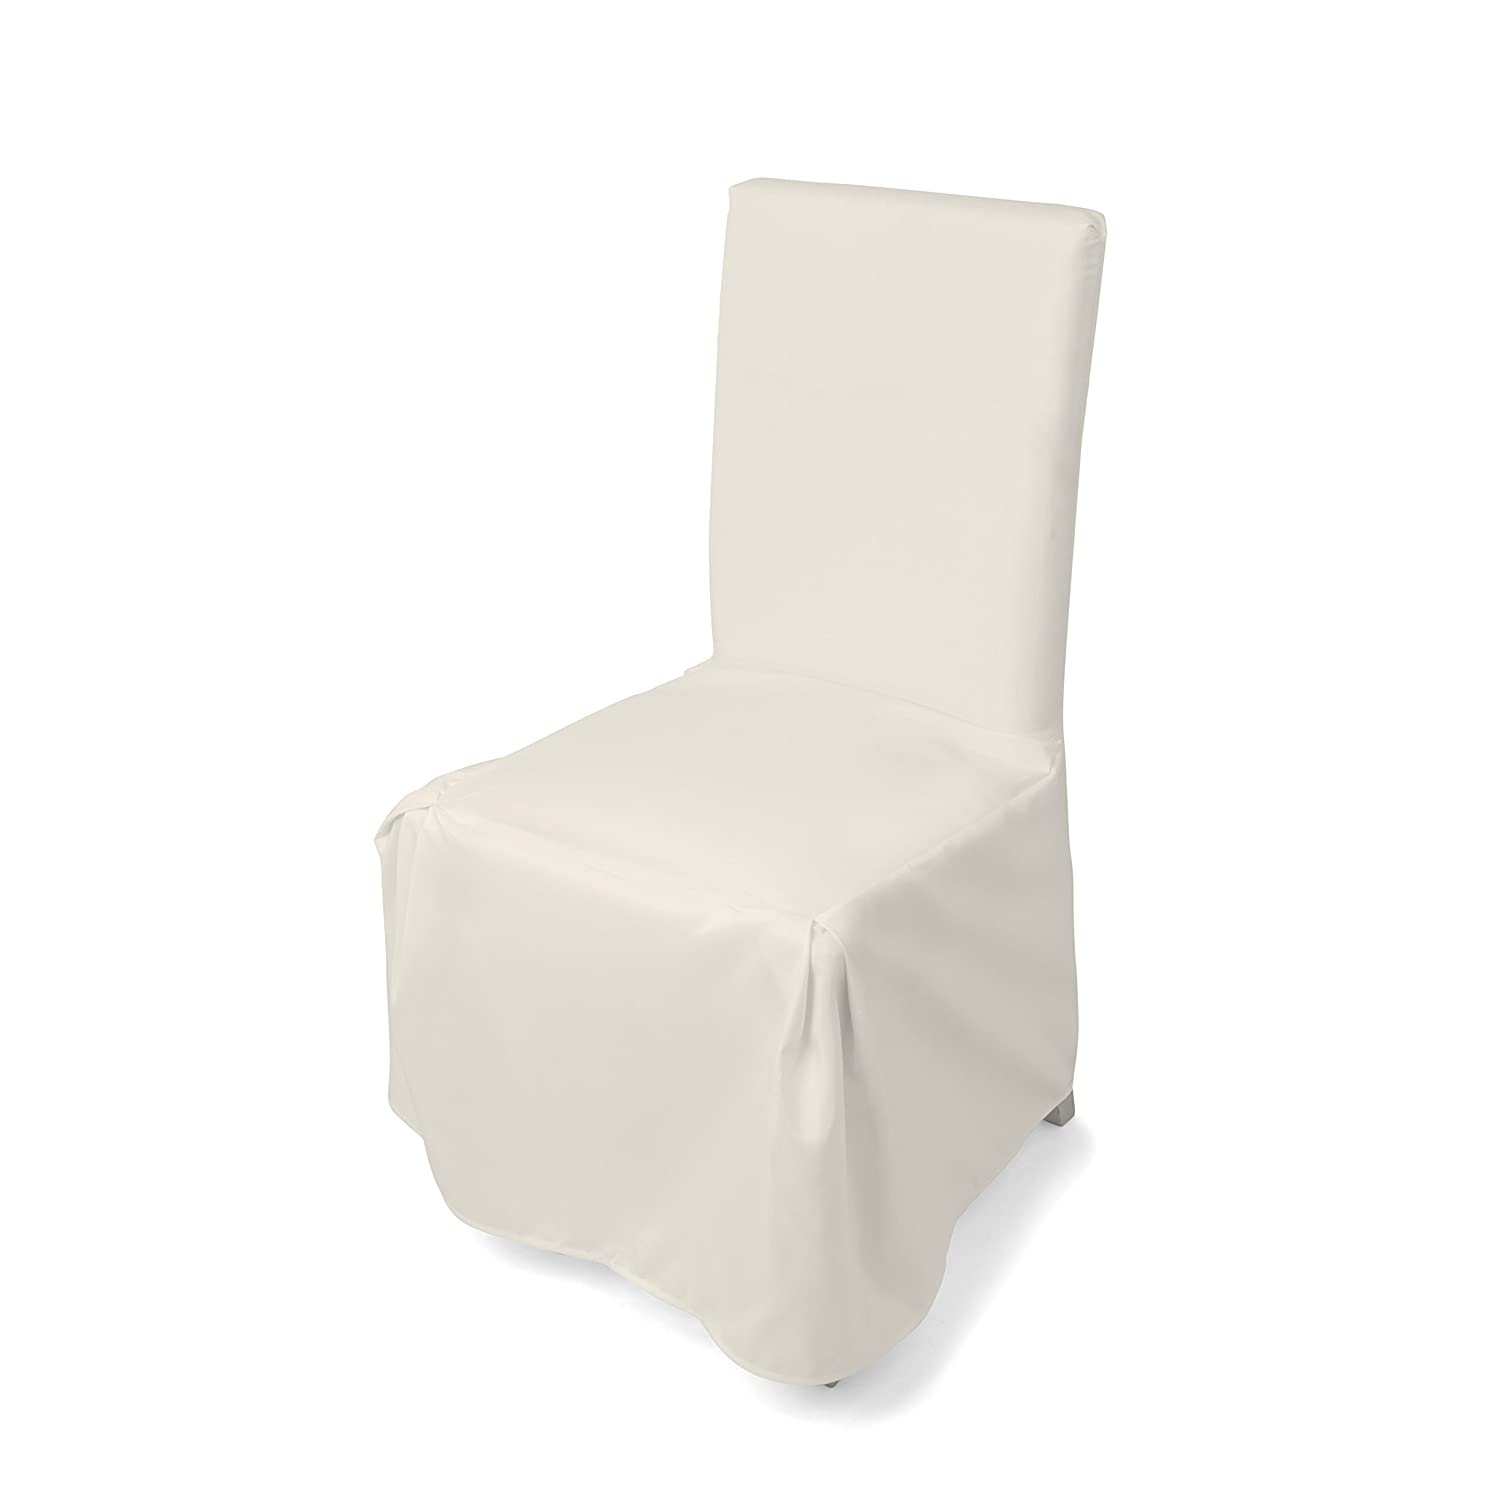 Fløyen Home Universal CHAIR COVER/Throw-over/Chair Cover, 100% polyester, beige, 50 x 50 x 100 cm Latupo LP-4179